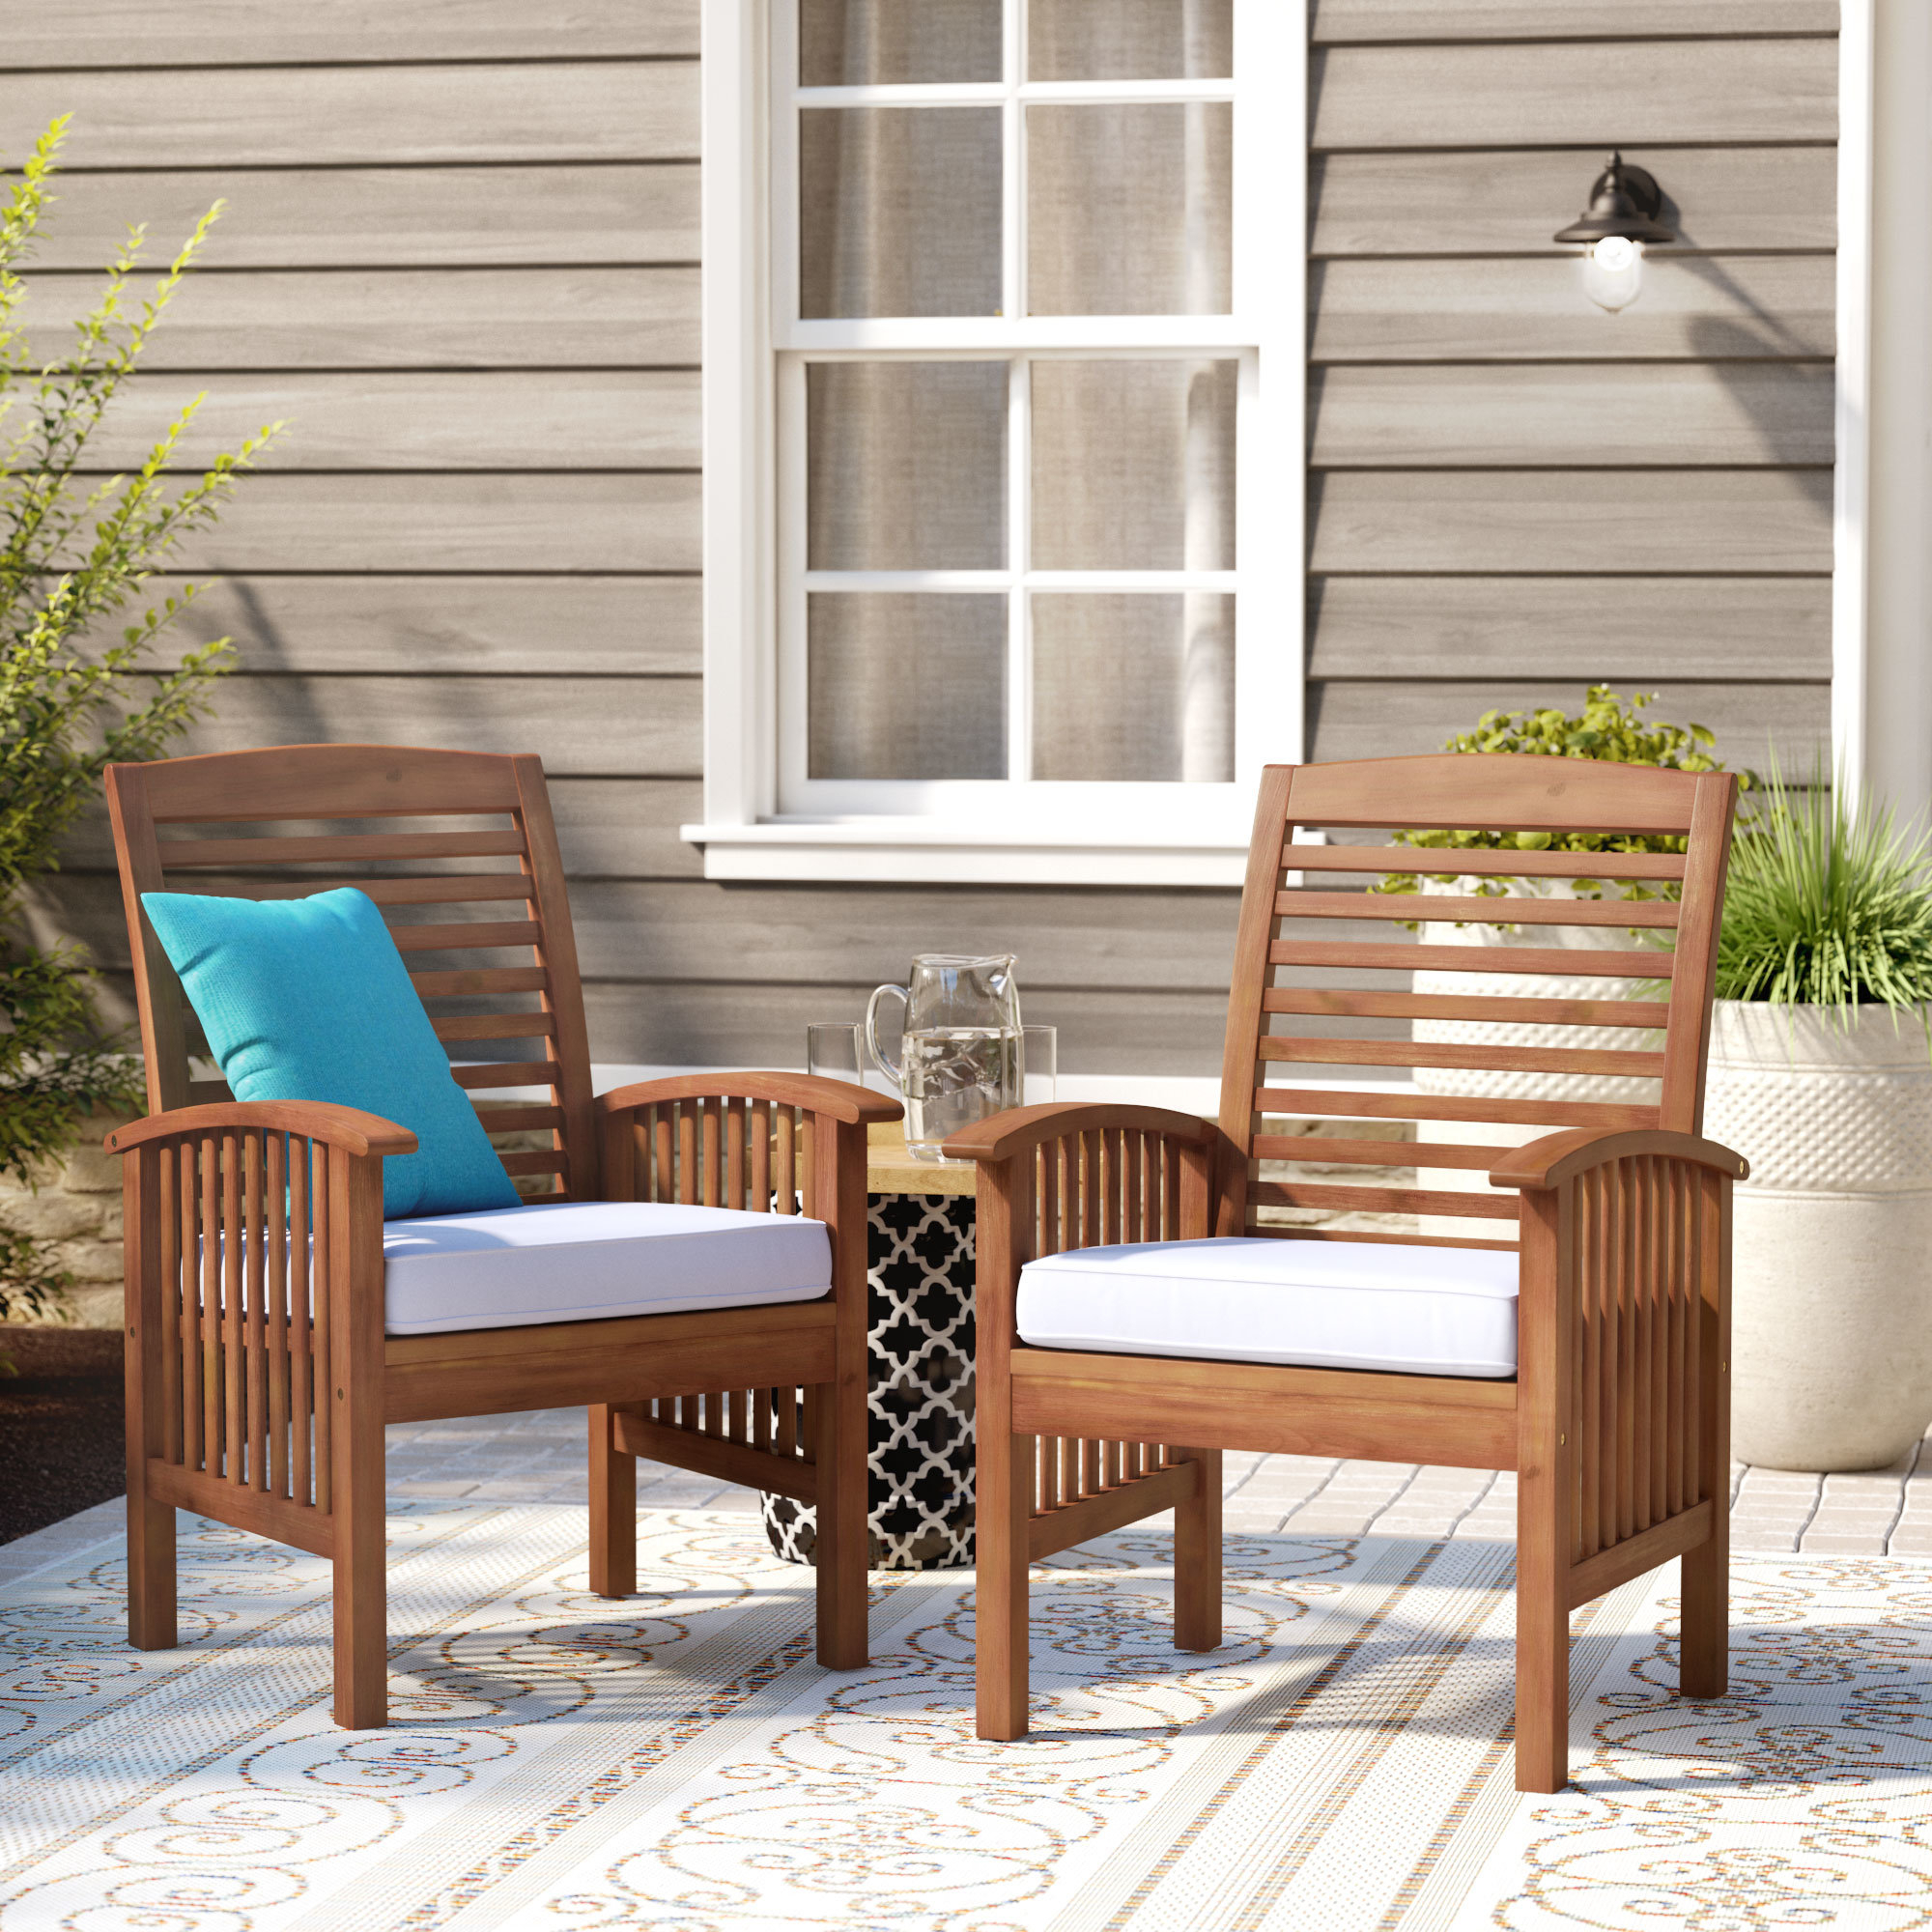 Tim Patio Dining Chair With Cushion Throughout Most Current Tim X Back Patio Loveseats With Cushions (View 12 of 20)